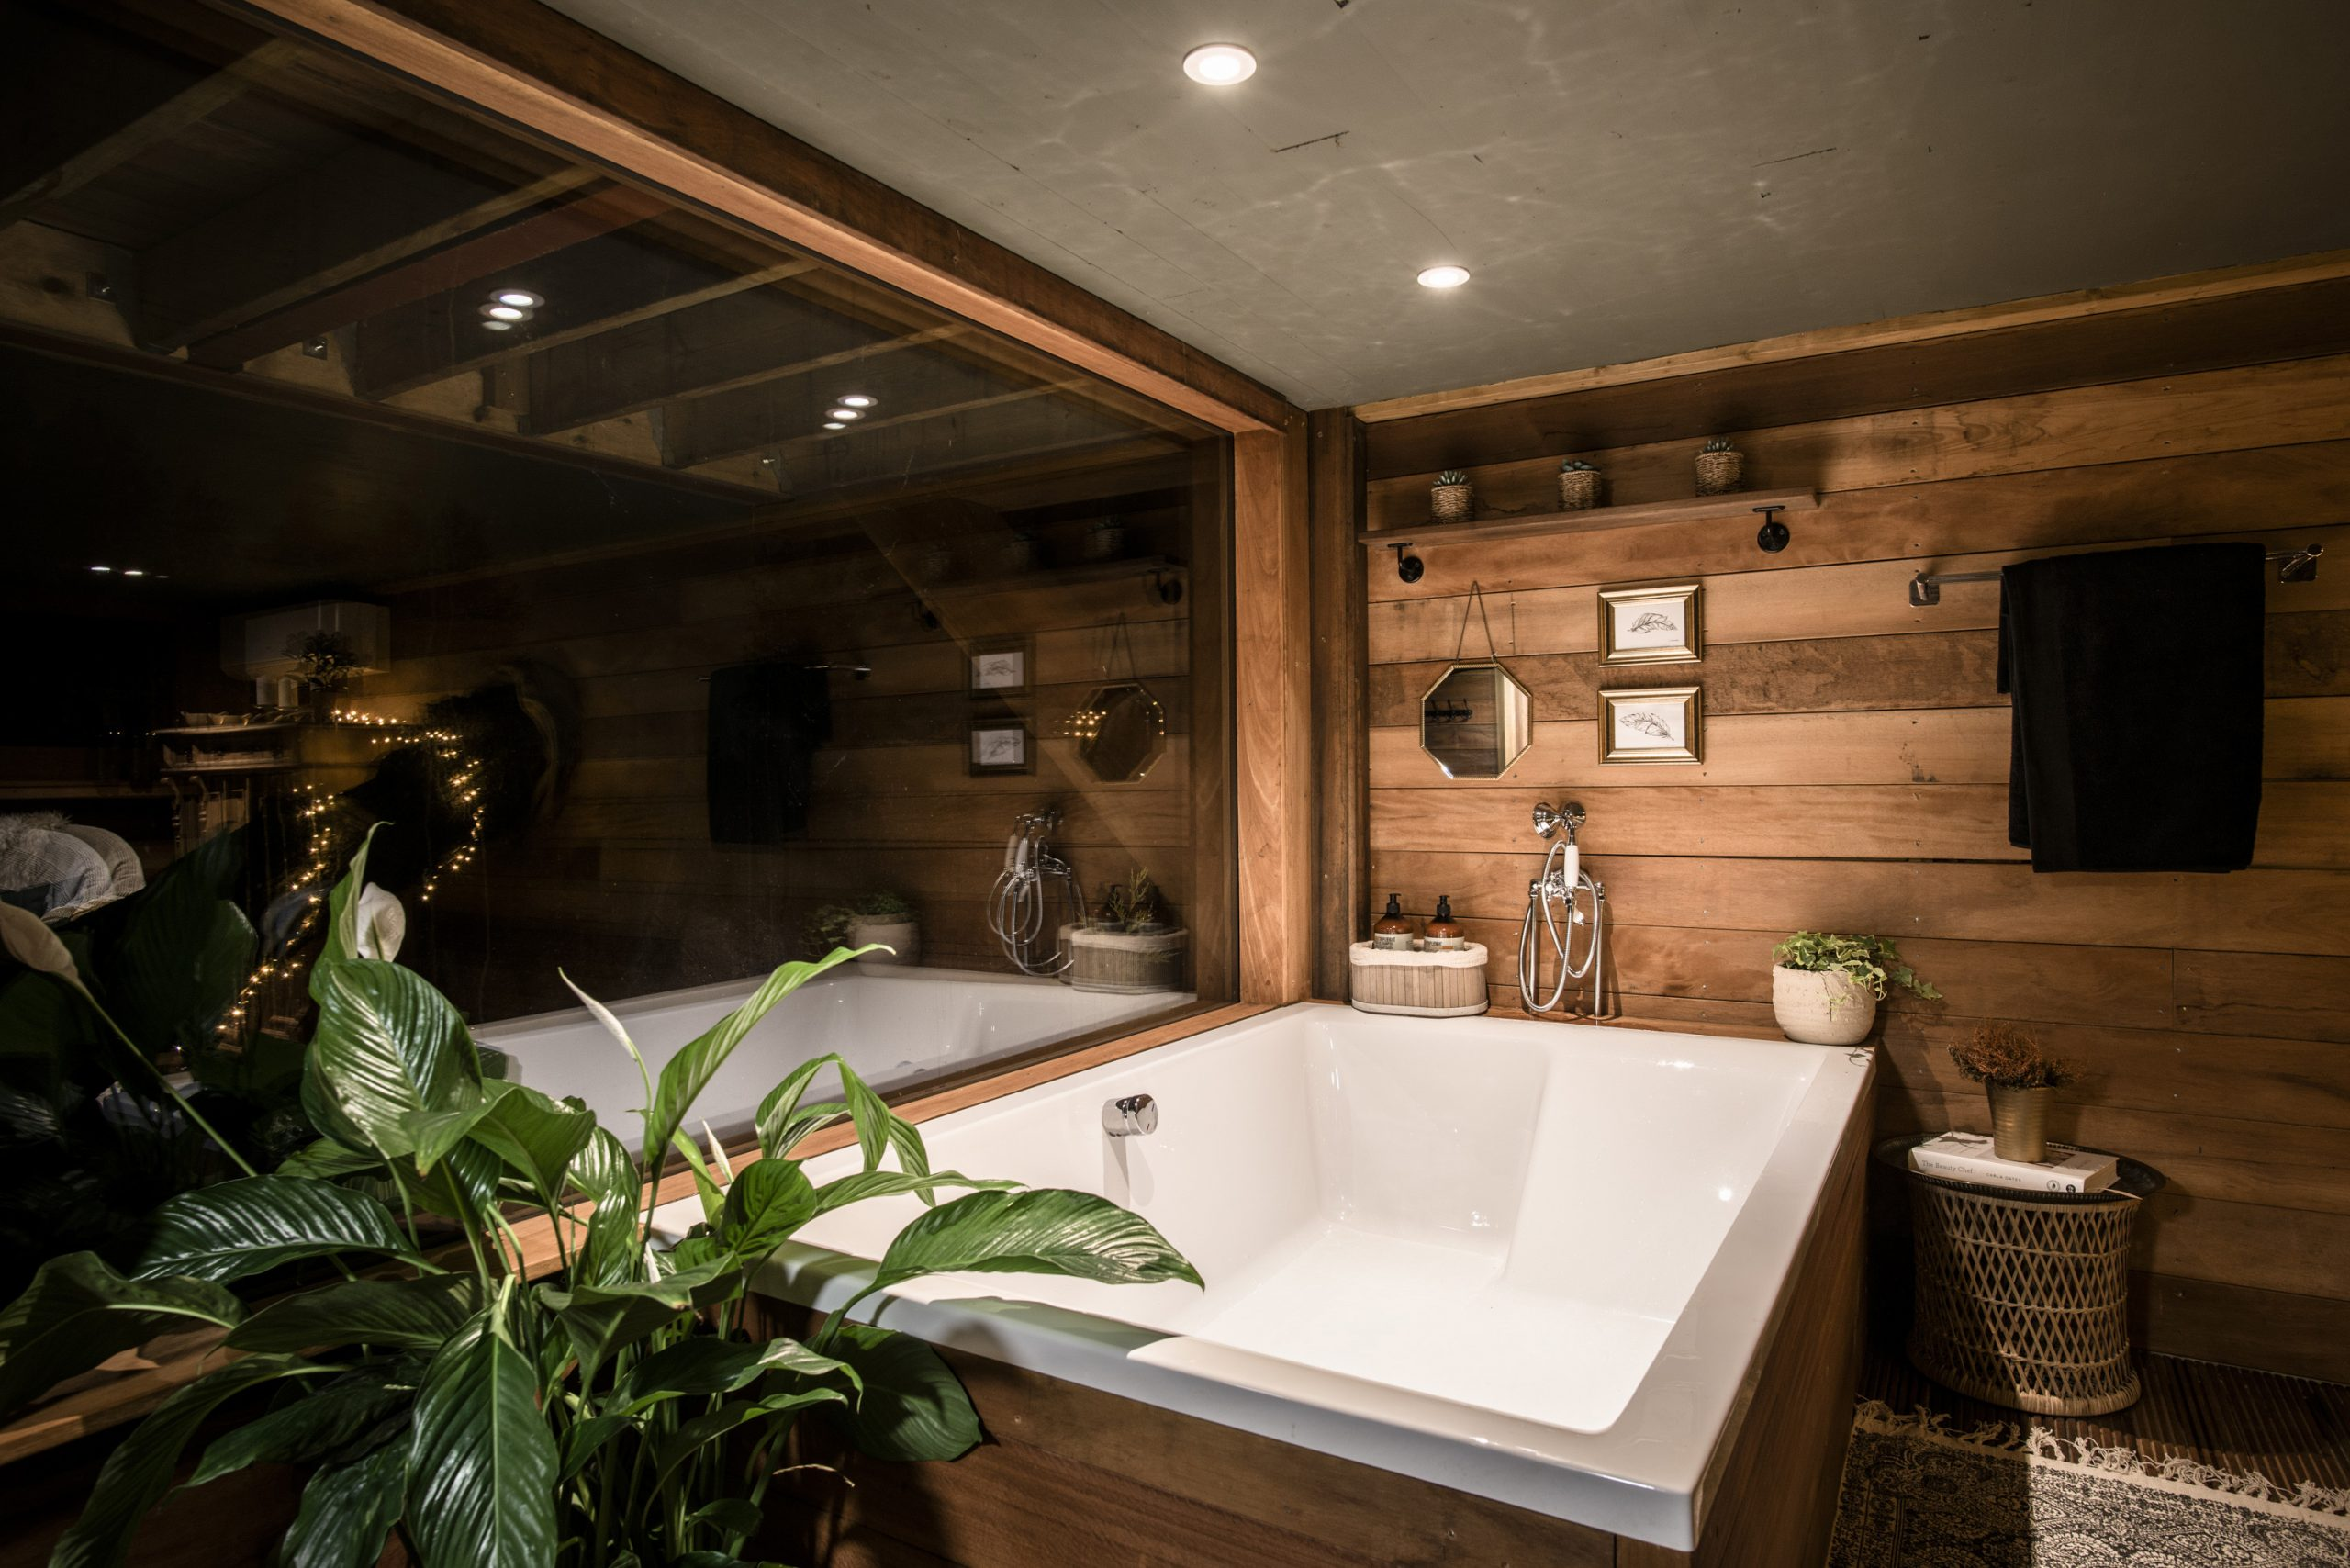 Nighttime photos showing the double bath and panoramic window in The Old Oak at Colemans Farm